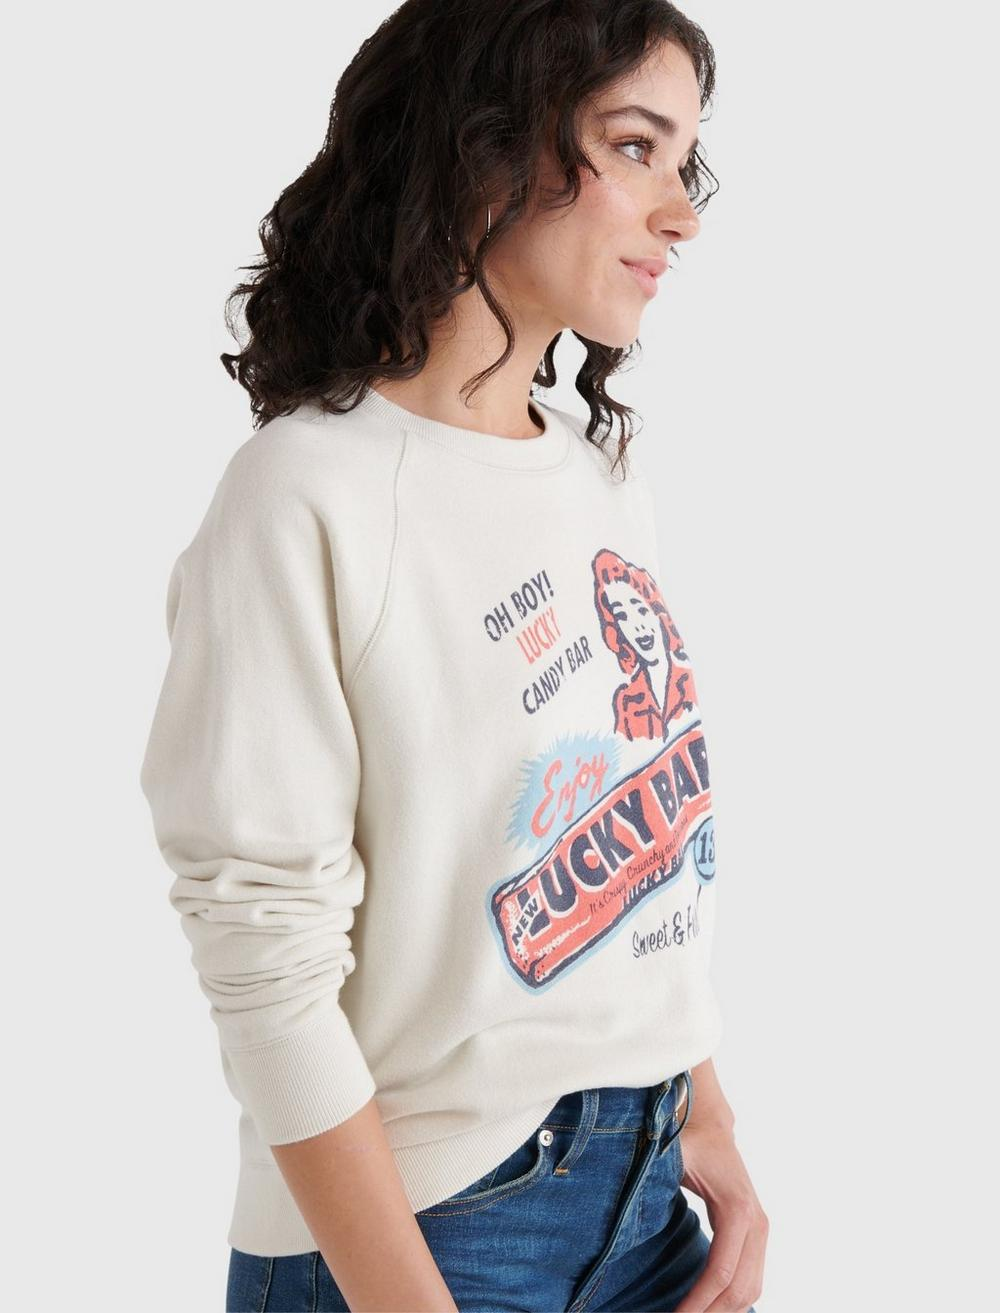 LUCKY BAR GRAPHIC CREW PULLOVER, image 3